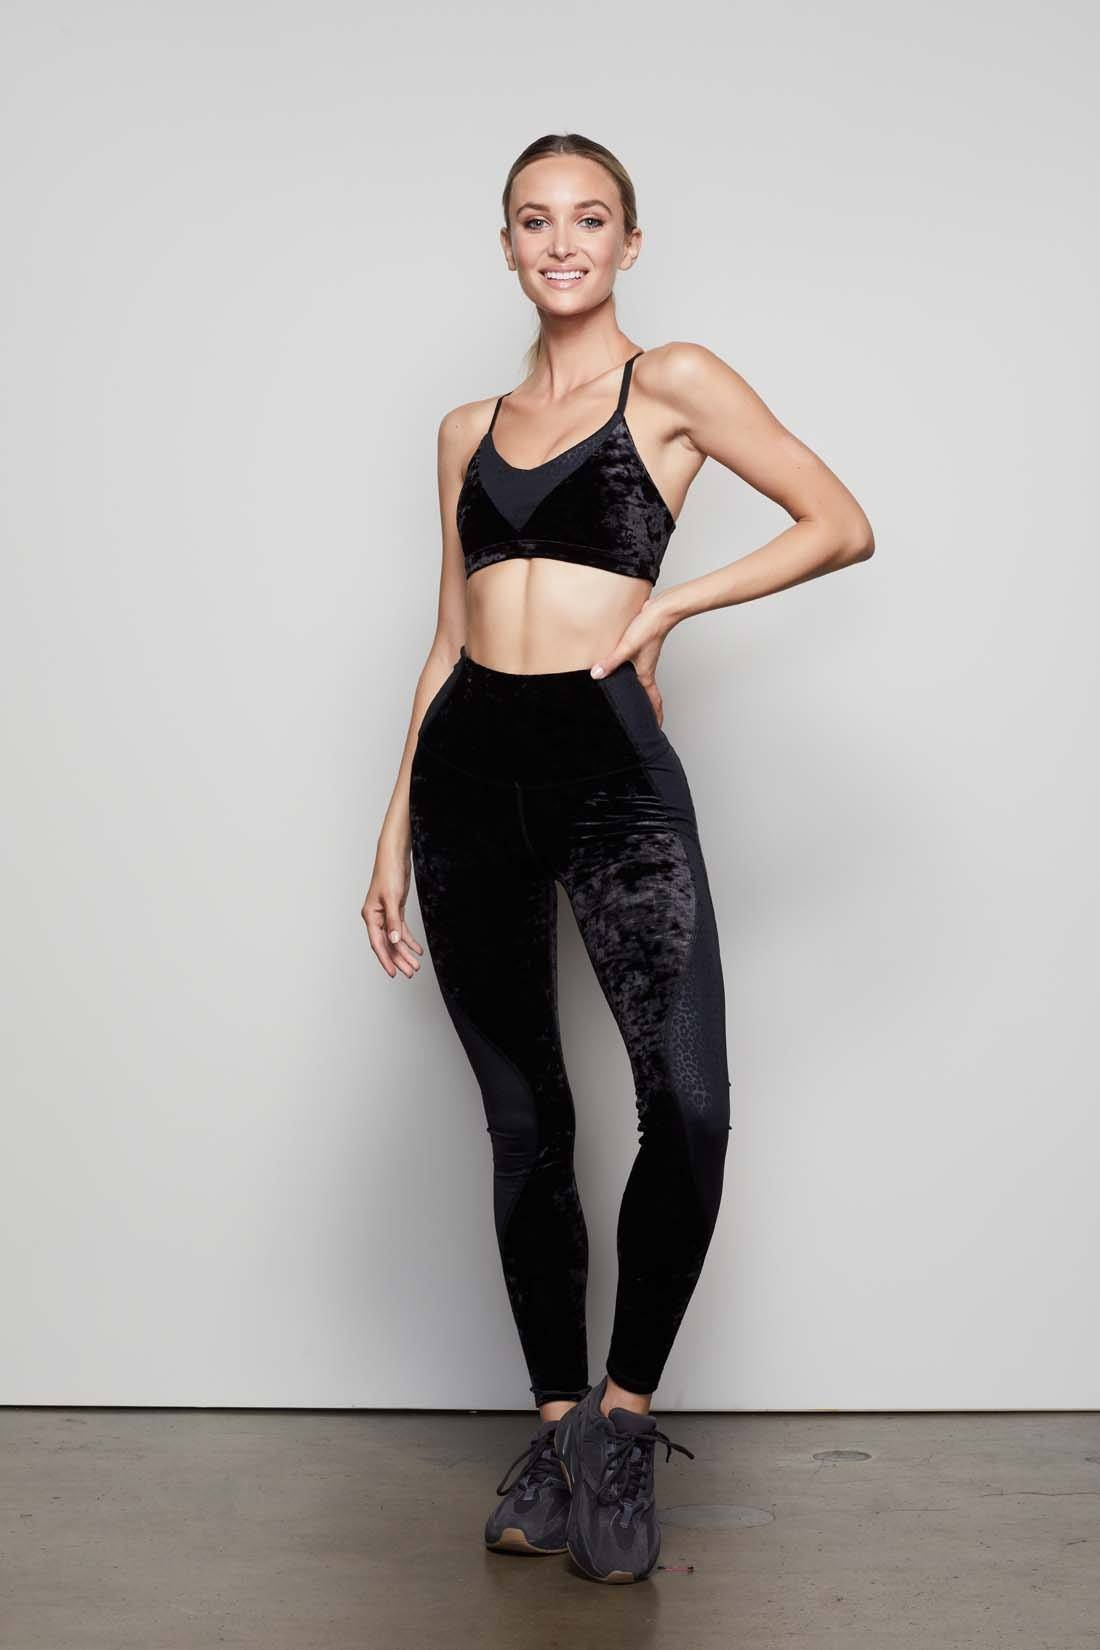 CRUSHING IT LEOPARD LEGGING   BLACK005 by Good American, available on goodamerican.com for $115 Olivia Culpo Pants SIMILAR PRODUCT